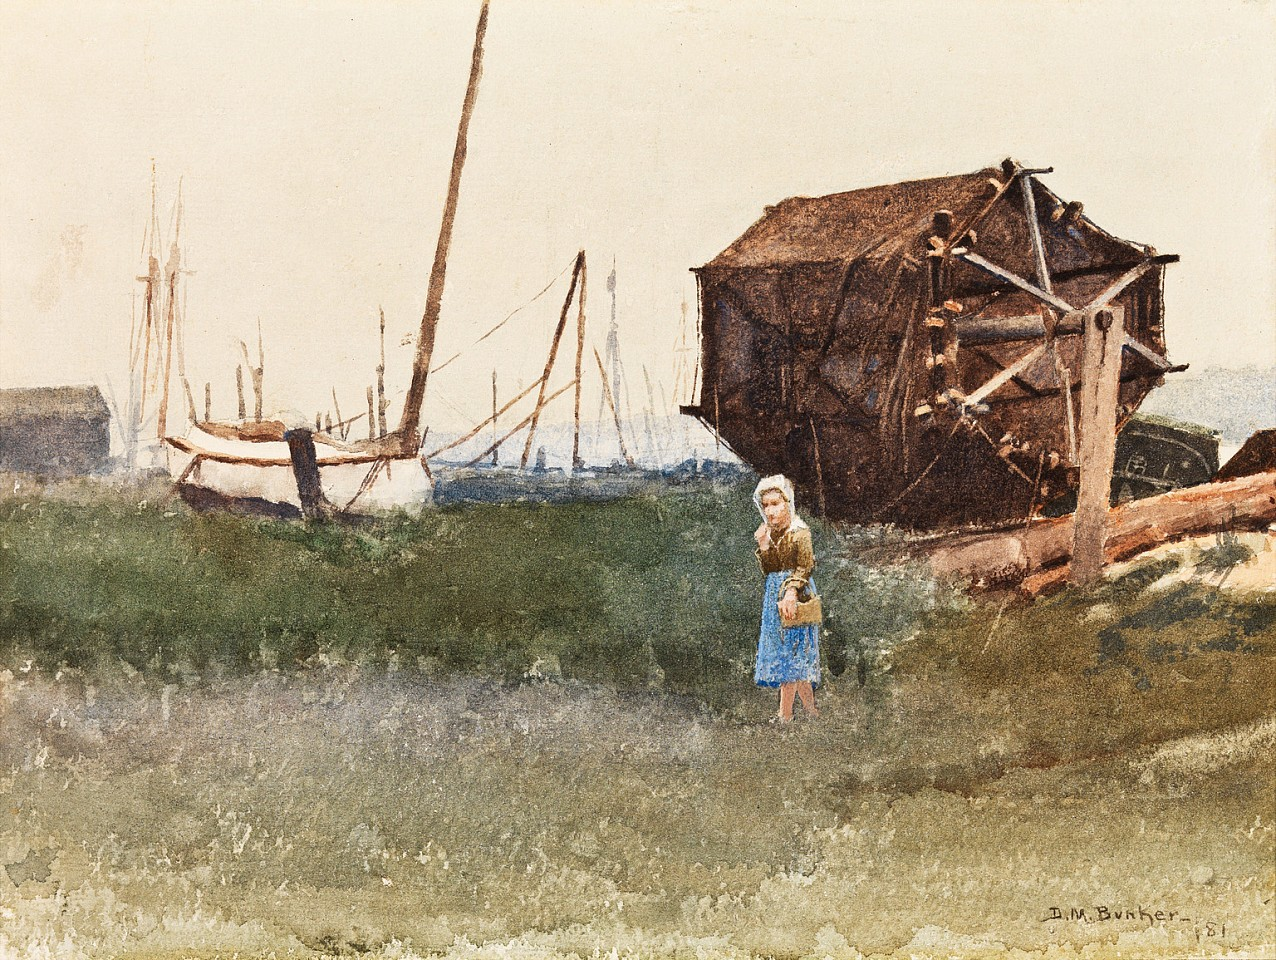 Dennis Miller Bunker ,   The Fisher Girl, Nantucket  ,  1881     watercolor on paper ,  9 1/4 x 12 1/2 in. (23.5 x 31.8 cm)     DB190401